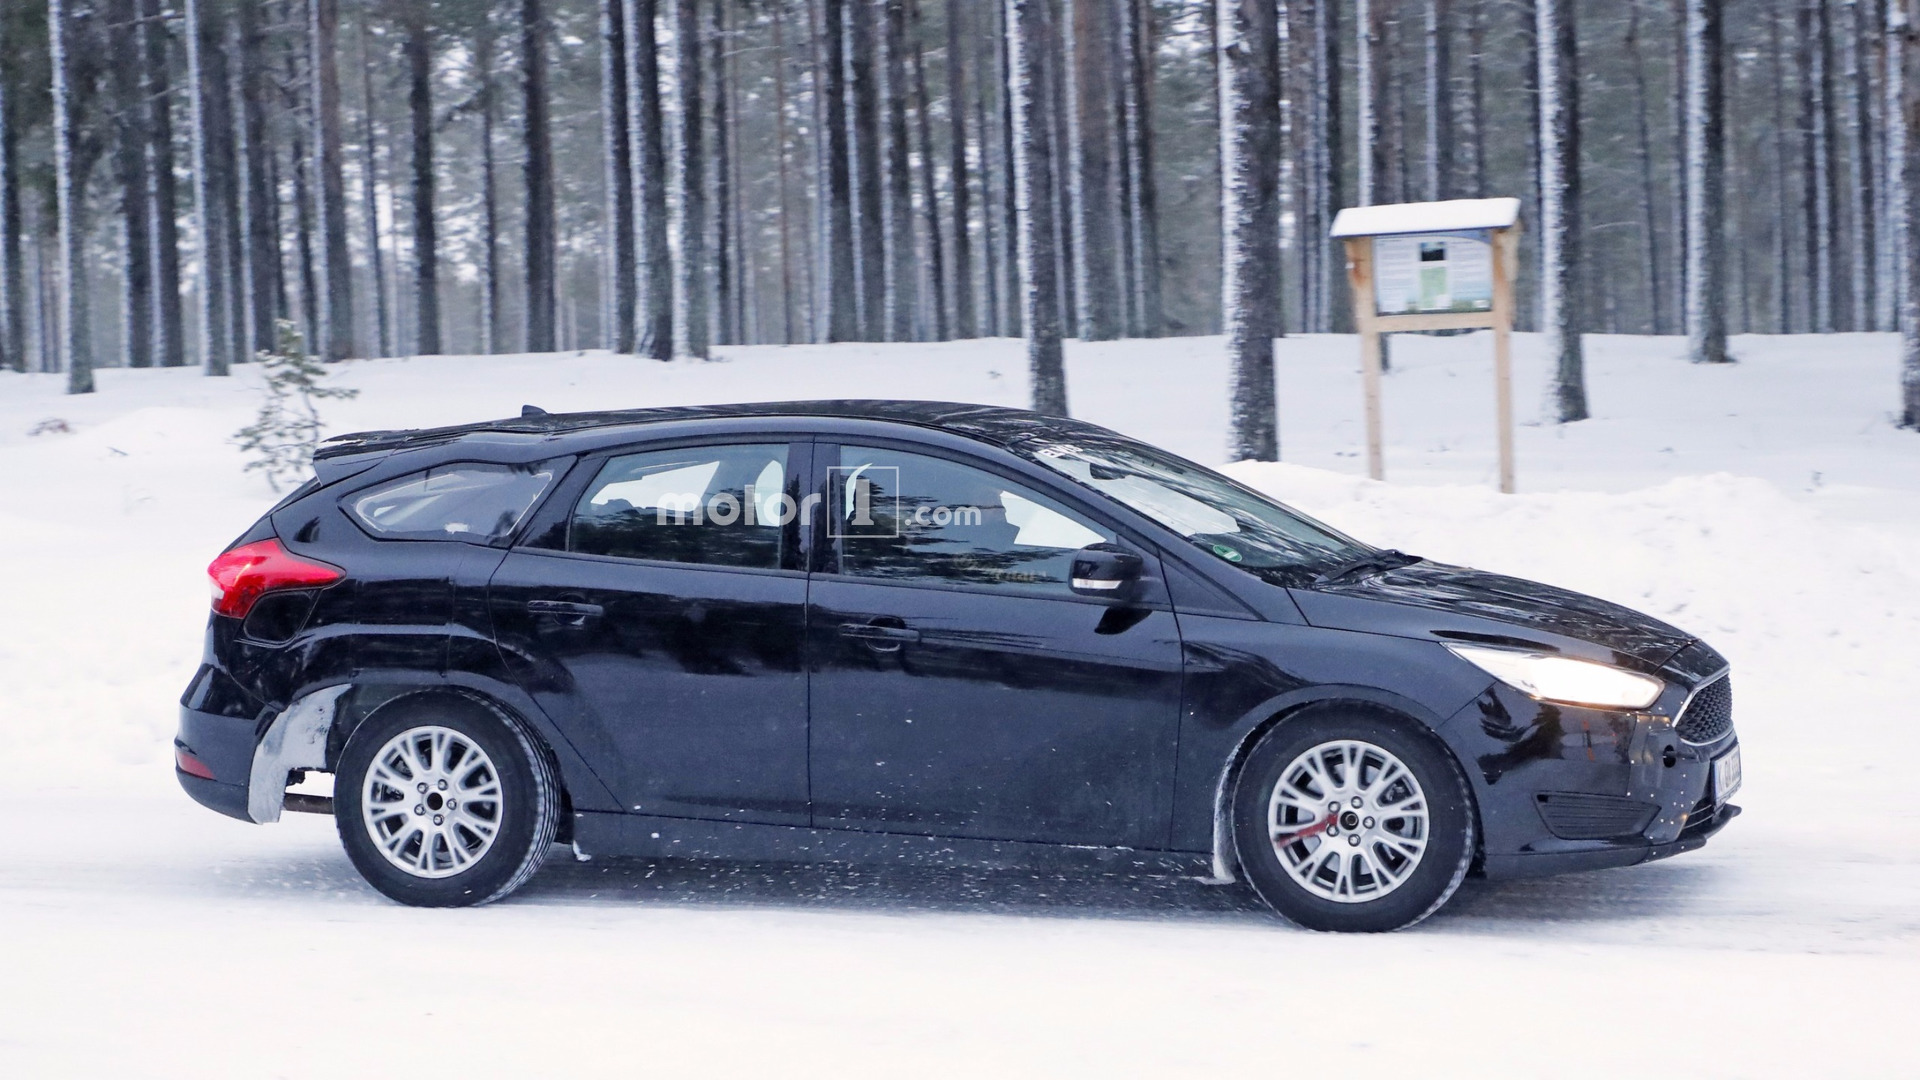 Spied 2019 ford focus wagon test mule looks like its melting